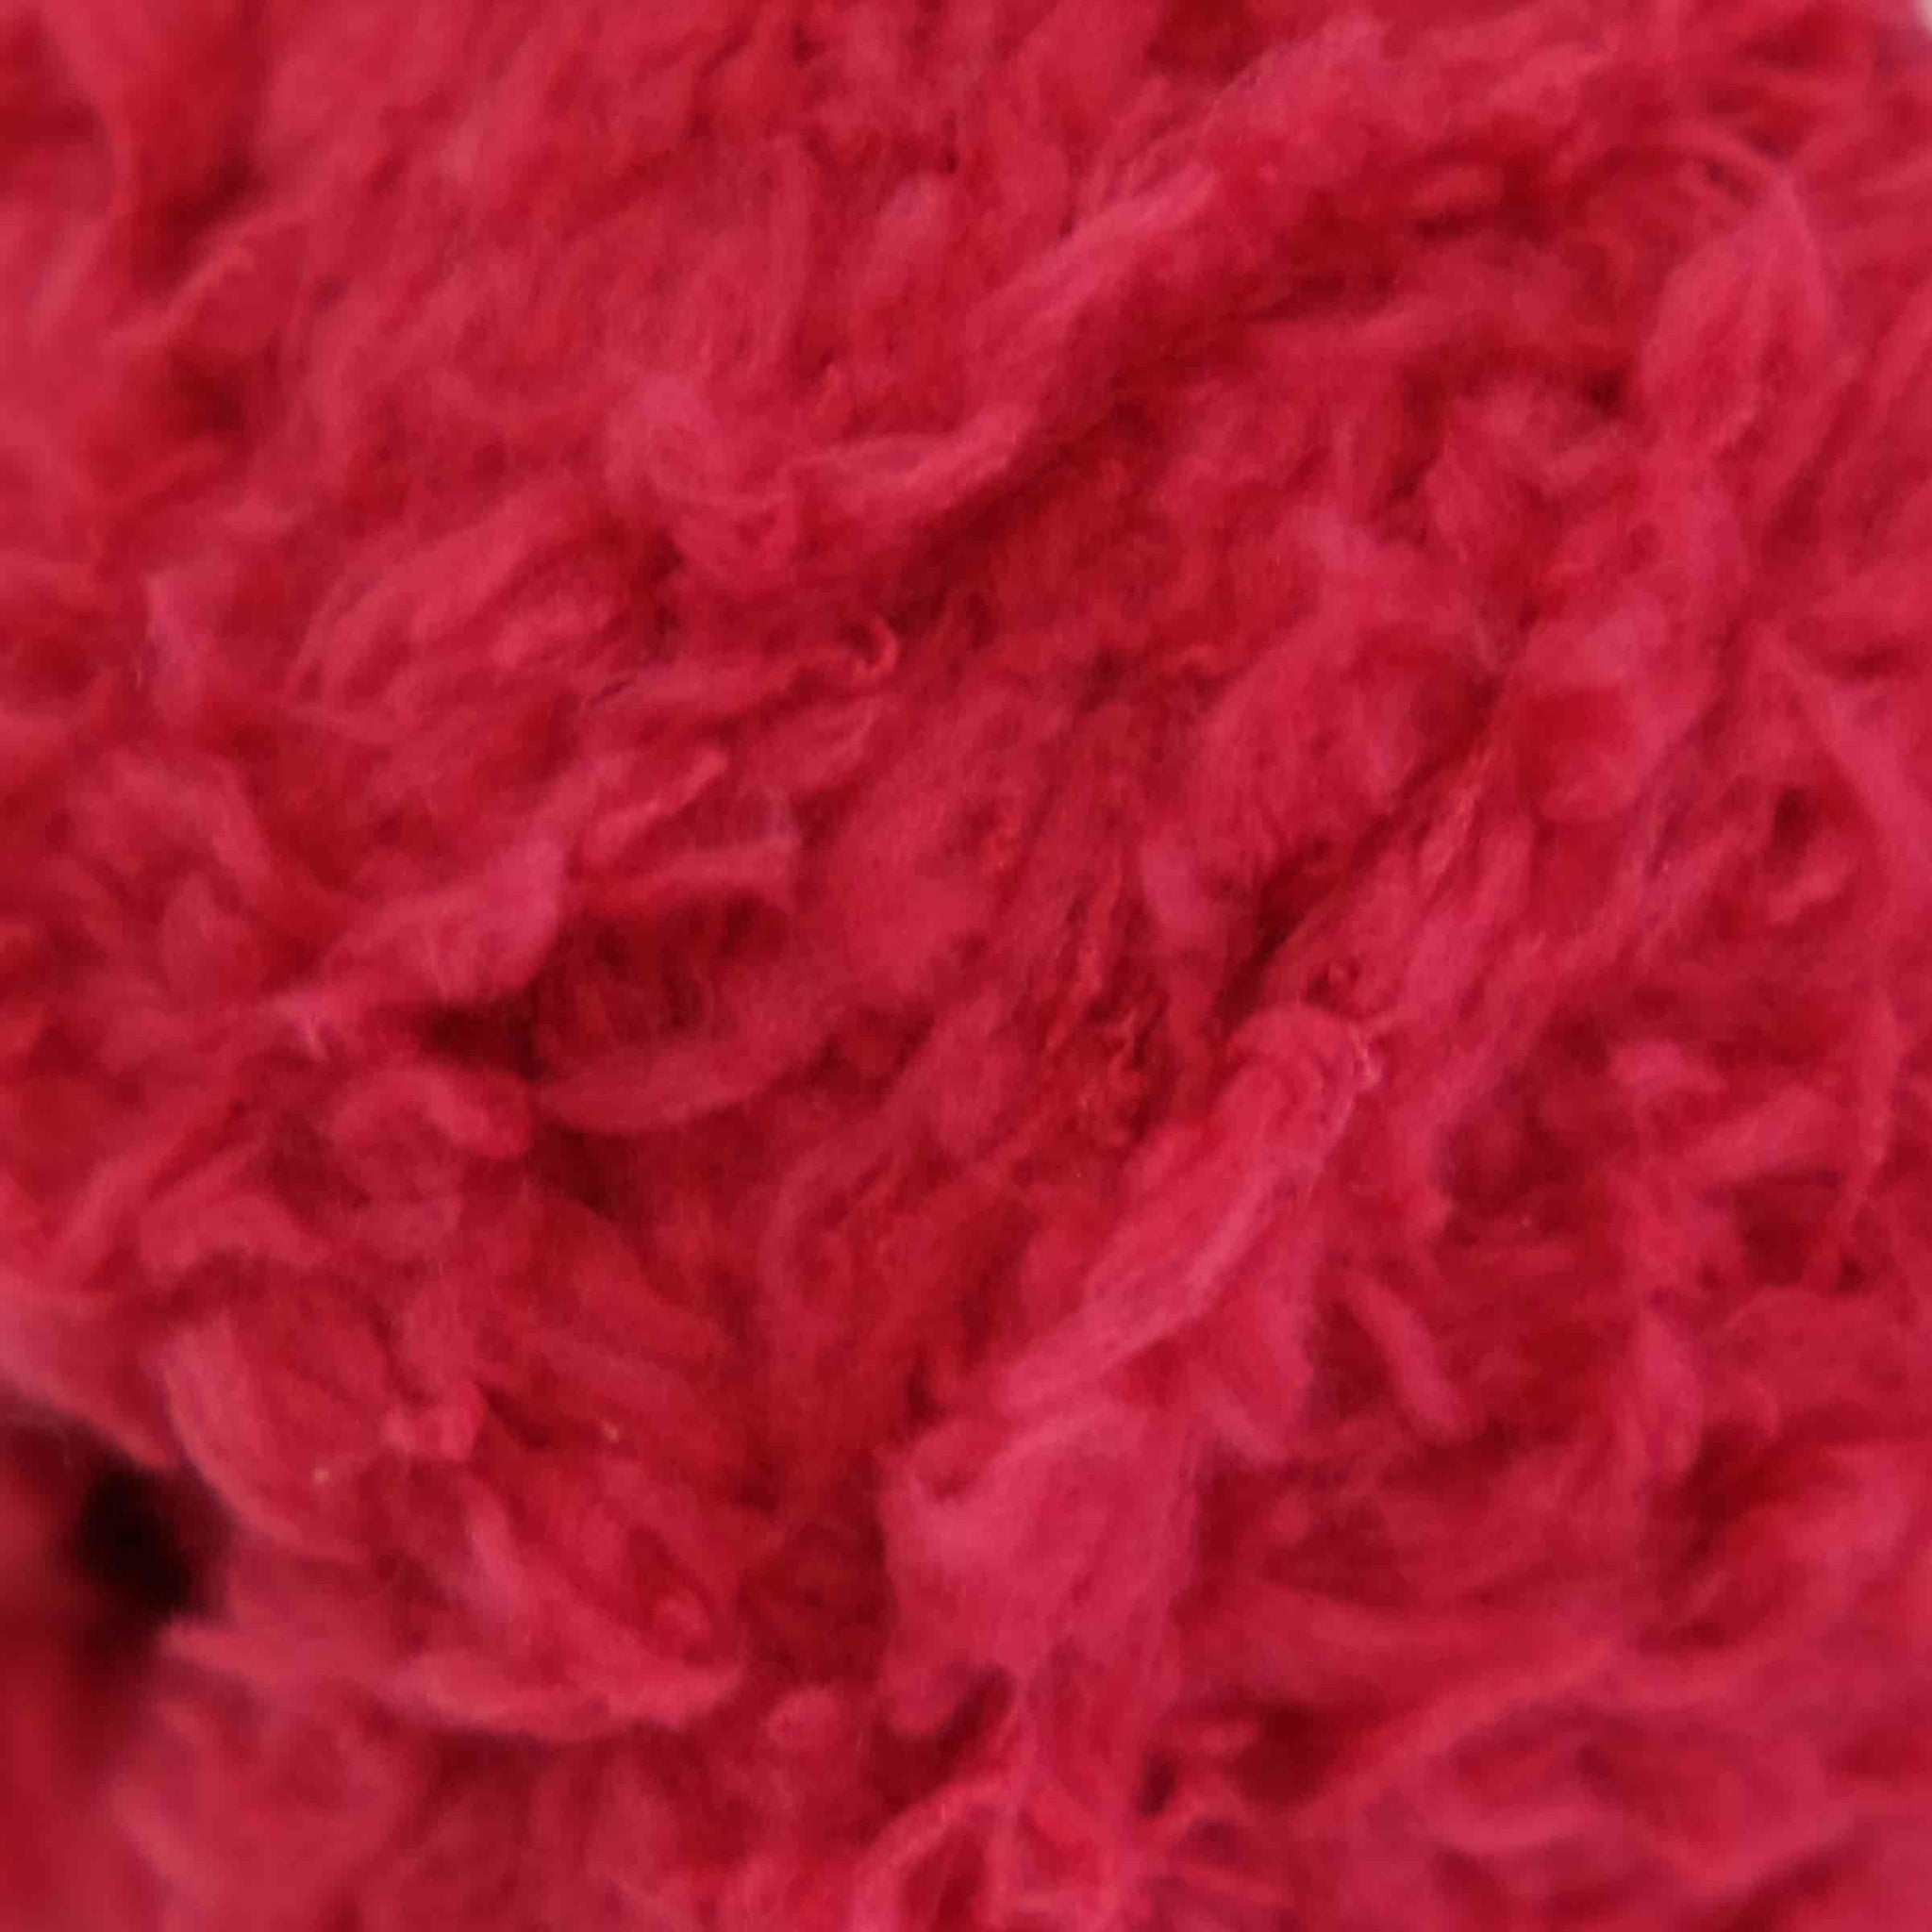 SIRDAR Snuggly Snowflake (DK) rosy red 655